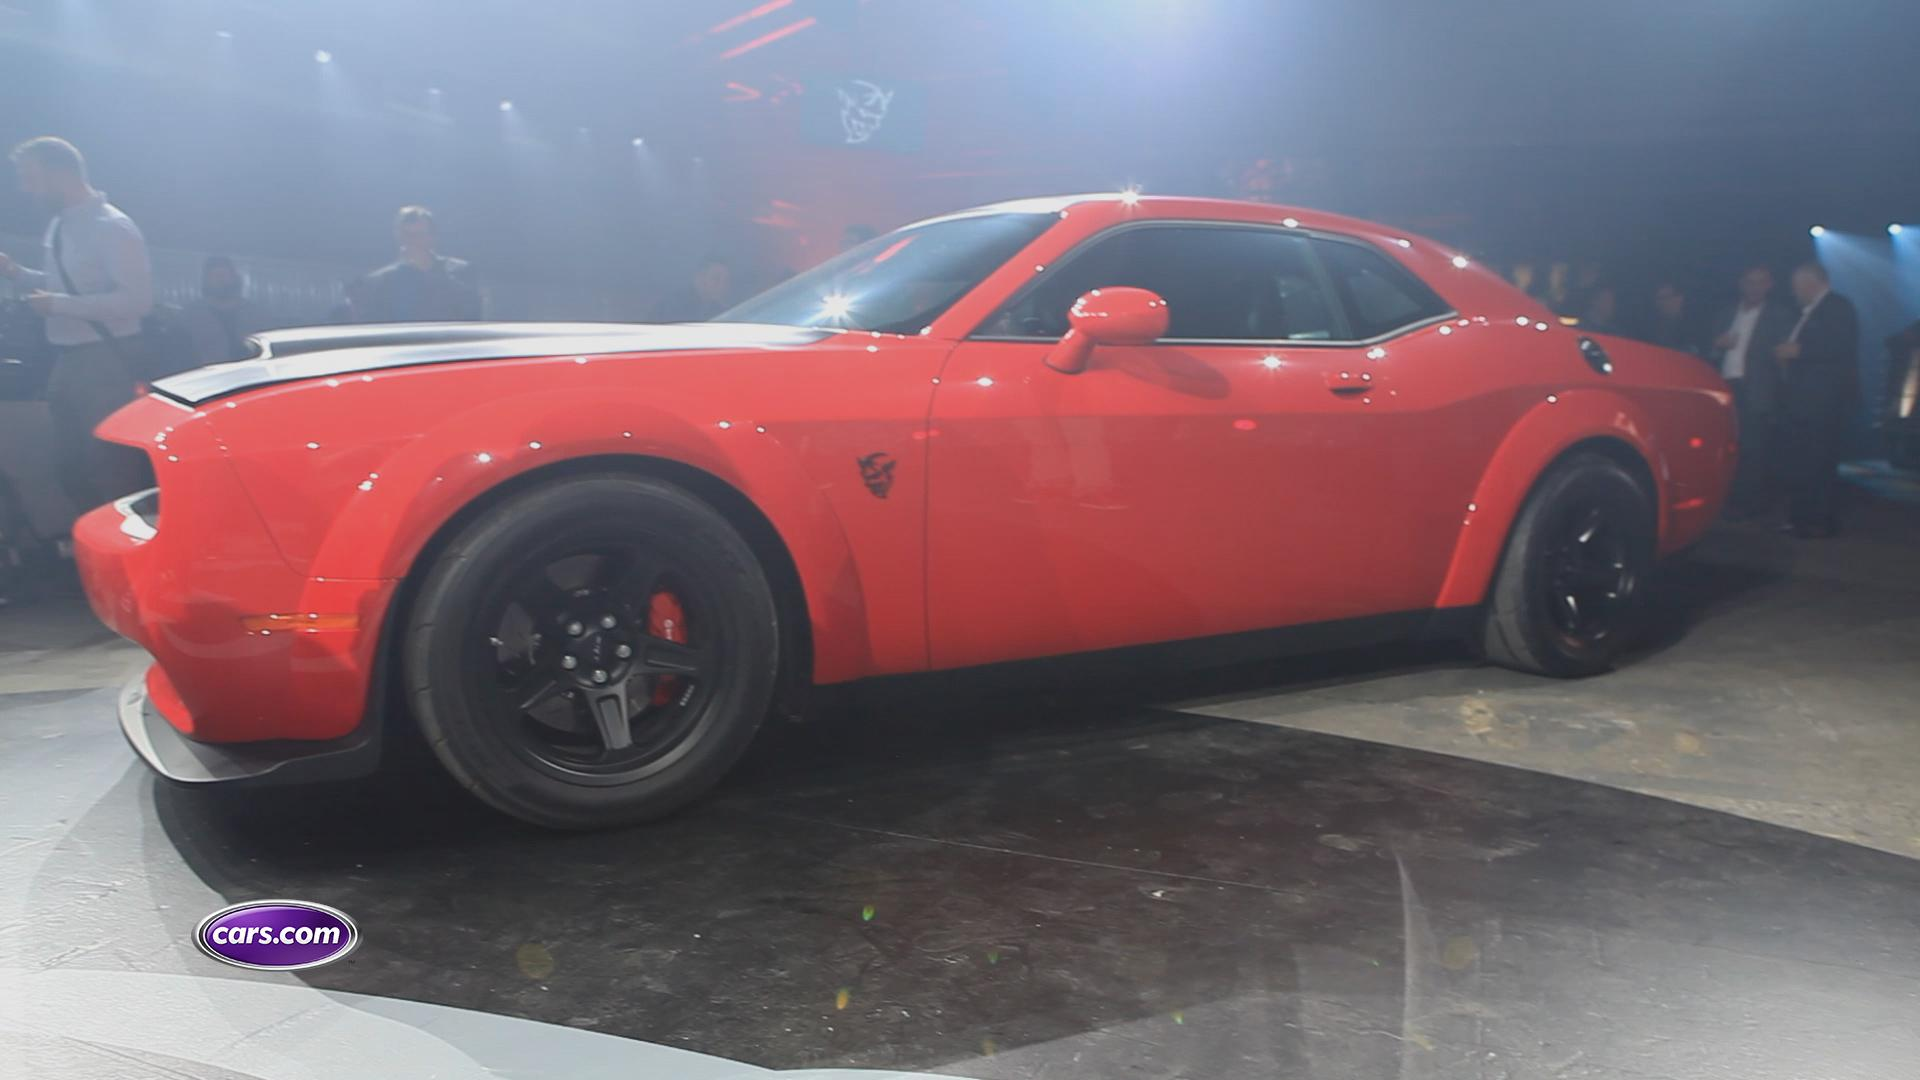 2018 Dodge Challenger SRT Demon Review: First Impressions